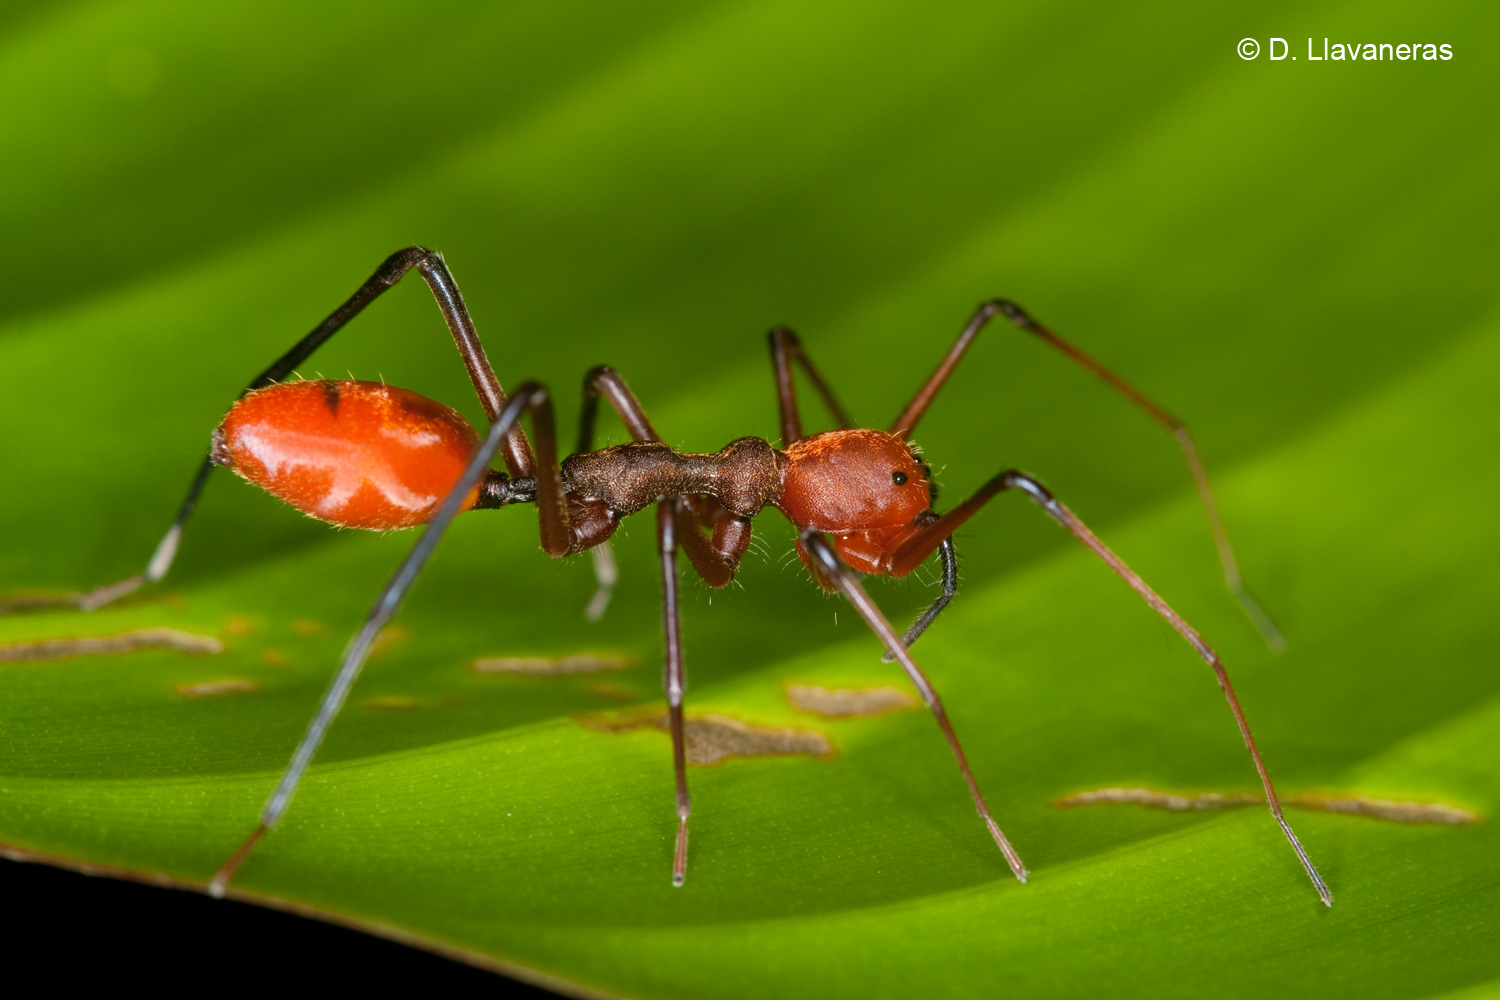 Ant mimic spider by dllavaneras